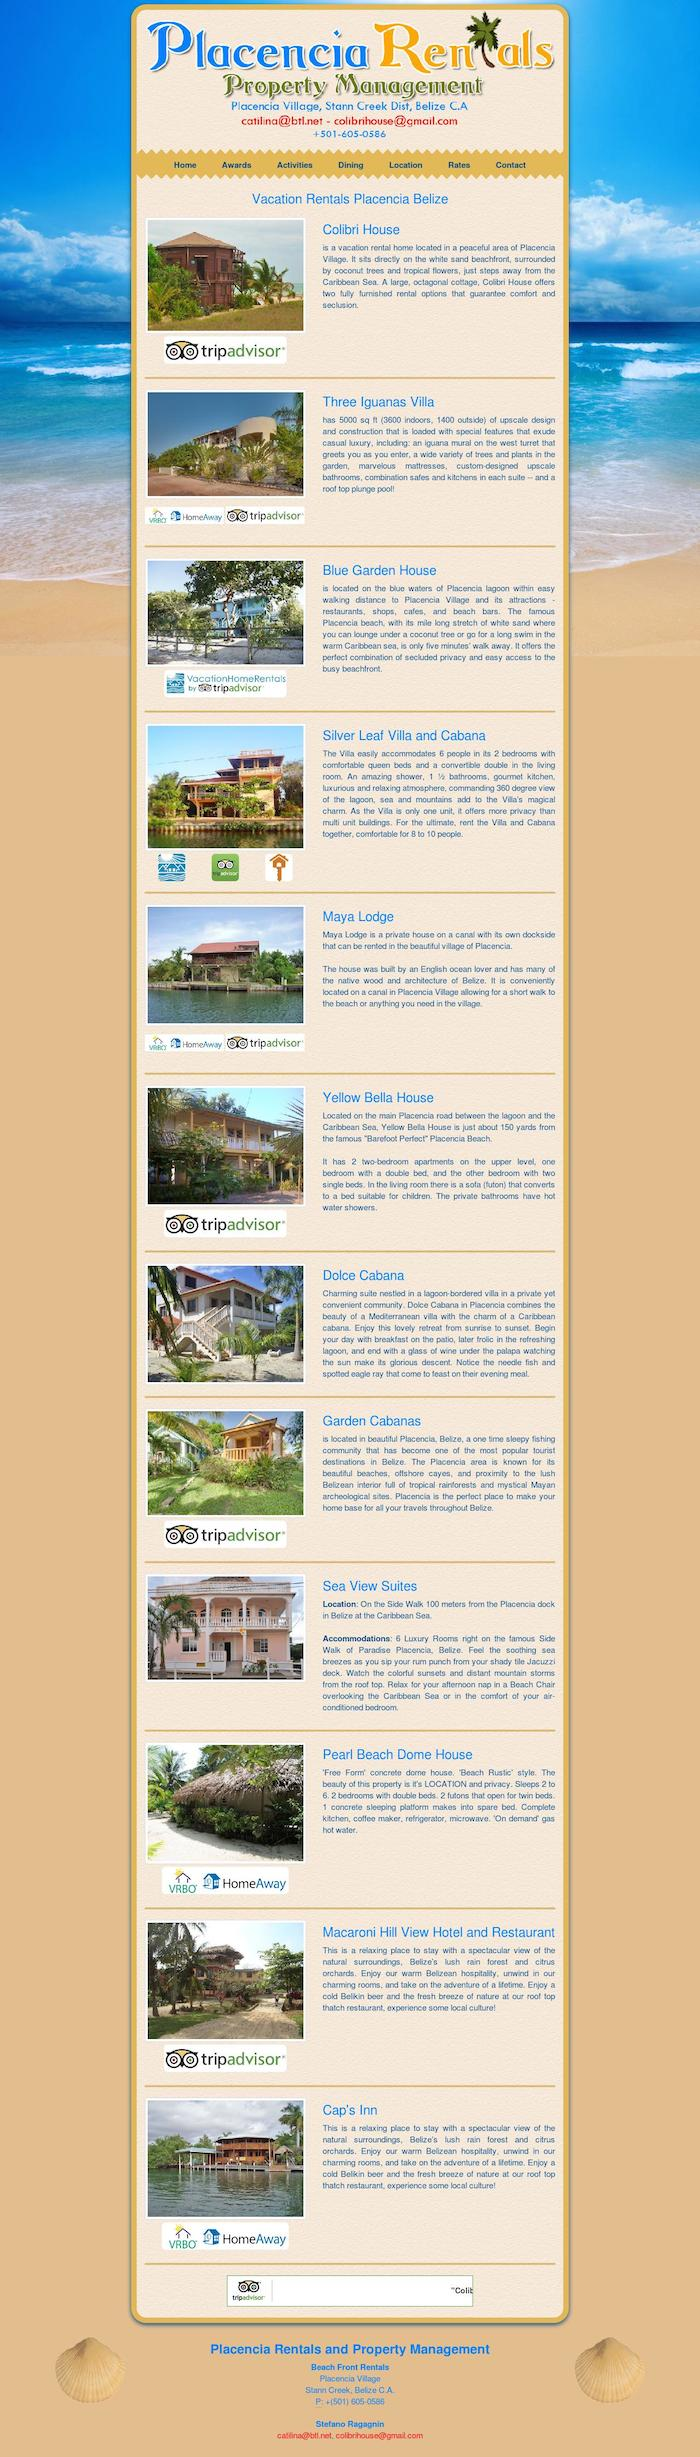 portfolio-website-placencia-rentals-1